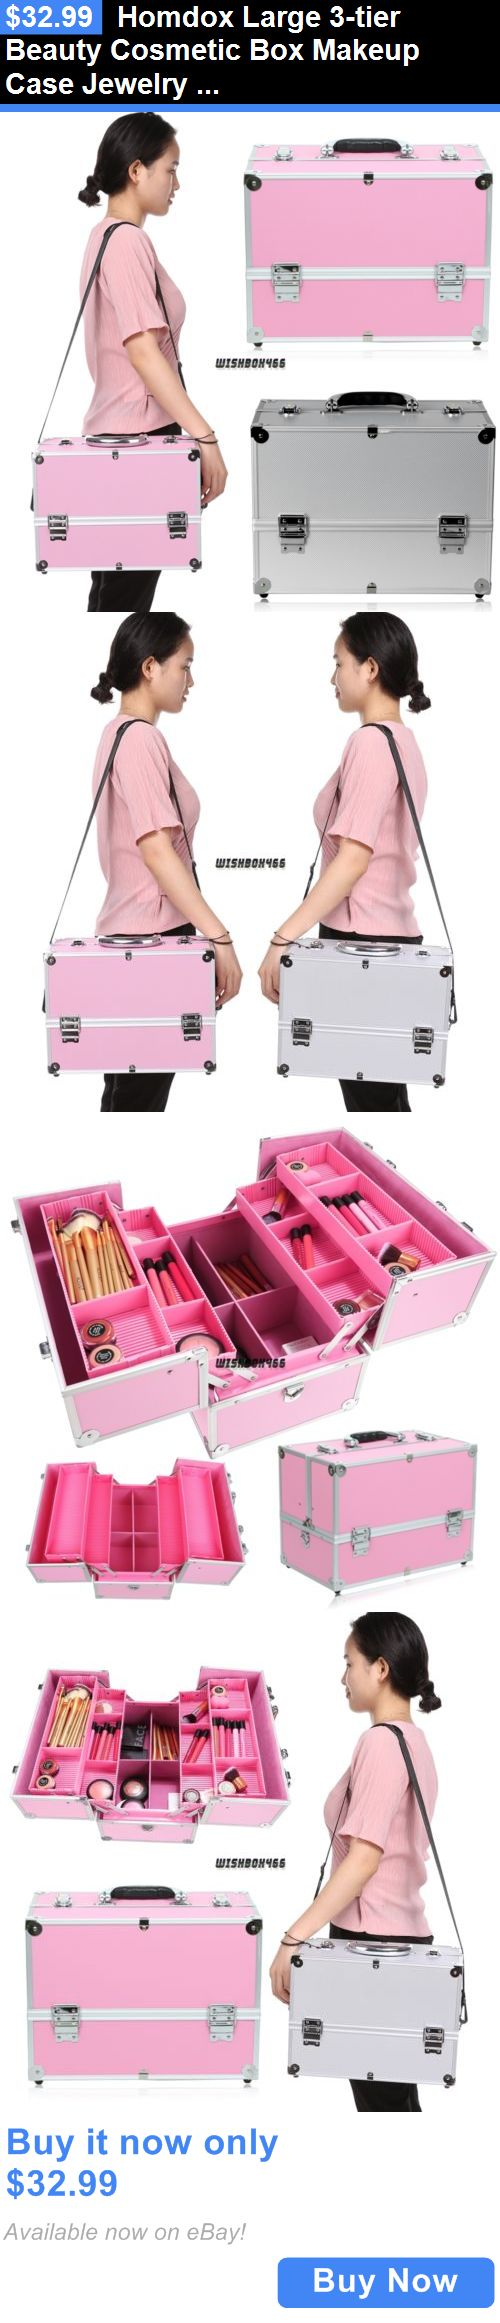 Beauty Makeup: Homdox Large 3-Tier Beauty Cosmetic Box Makeup Case Jewelry Train Case Organizer BUY IT NOW ONLY: $32.99